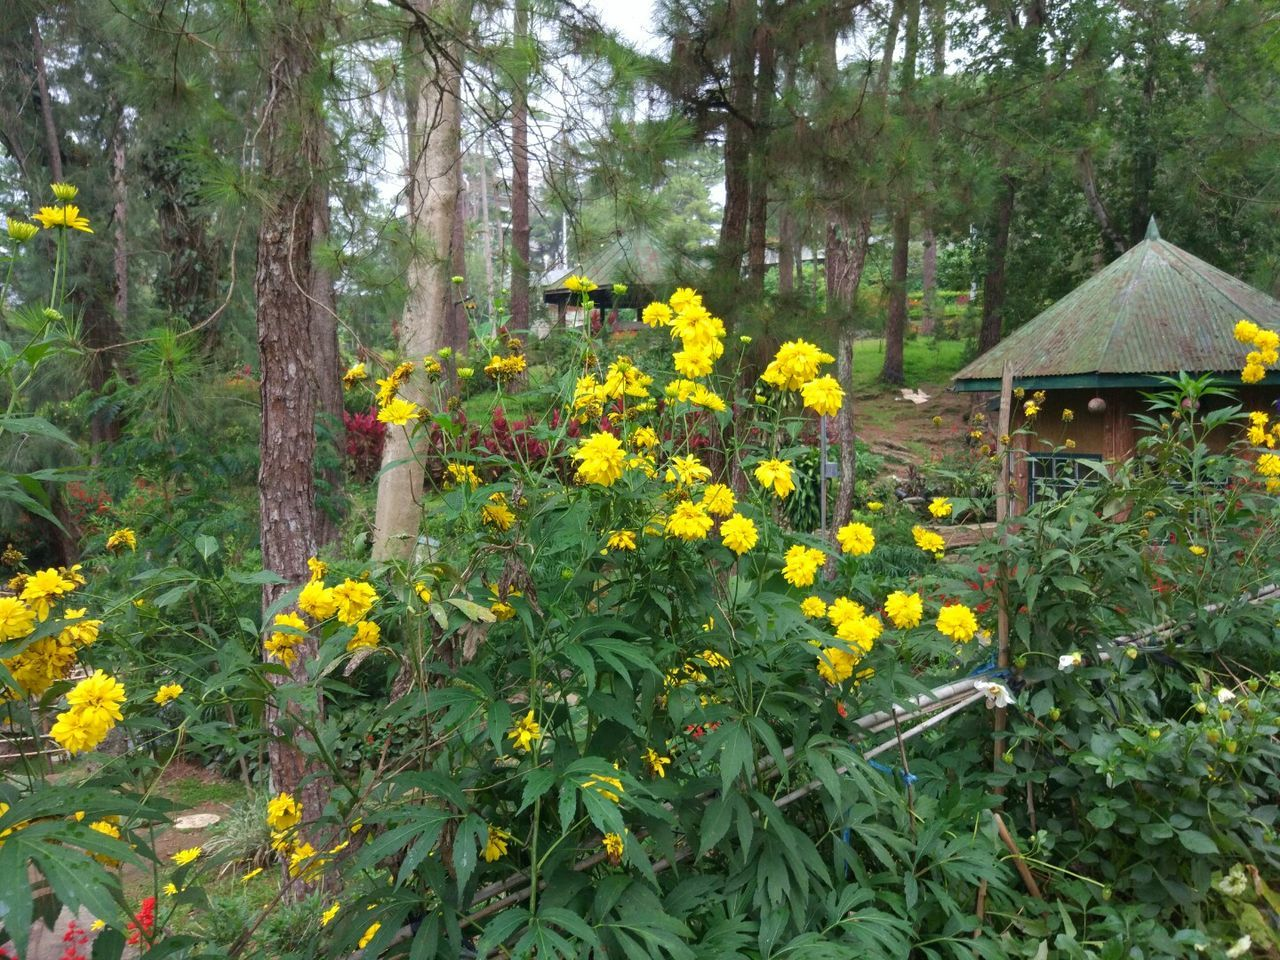 flower, growth, tree, nature, plant, outdoors, day, yellow, forest, no people, tree trunk, beauty in nature, tranquility, freshness, fragility, flower head